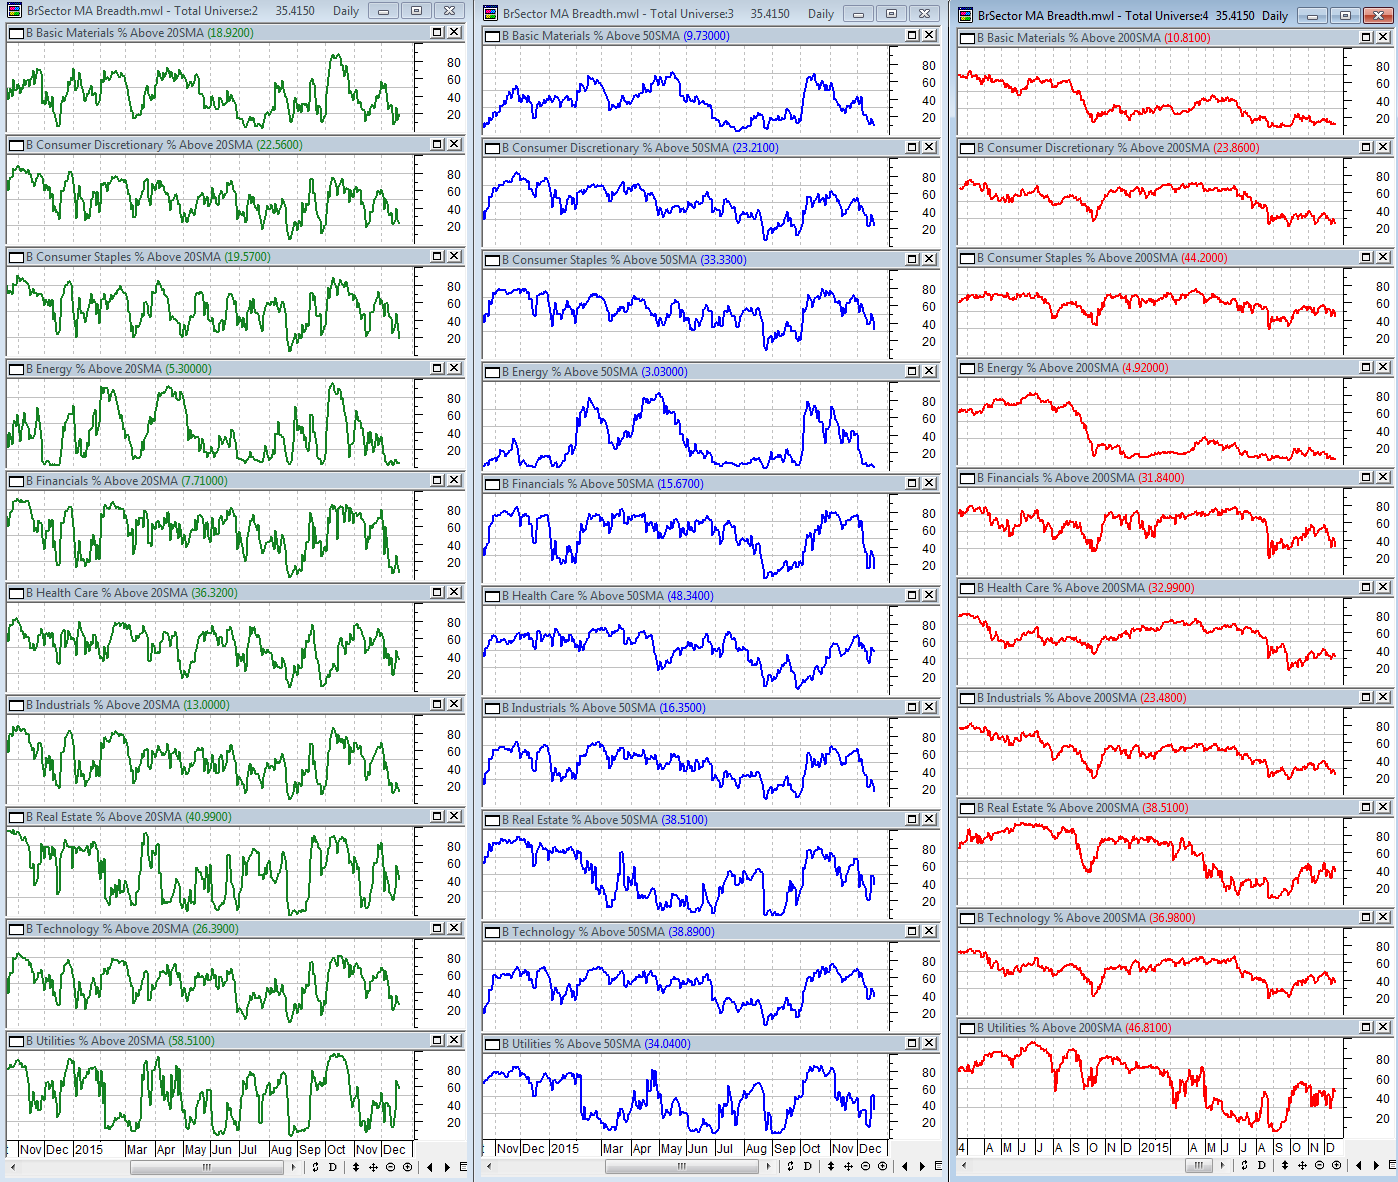 12-18-2015 BSec MA Breadth Dashboard